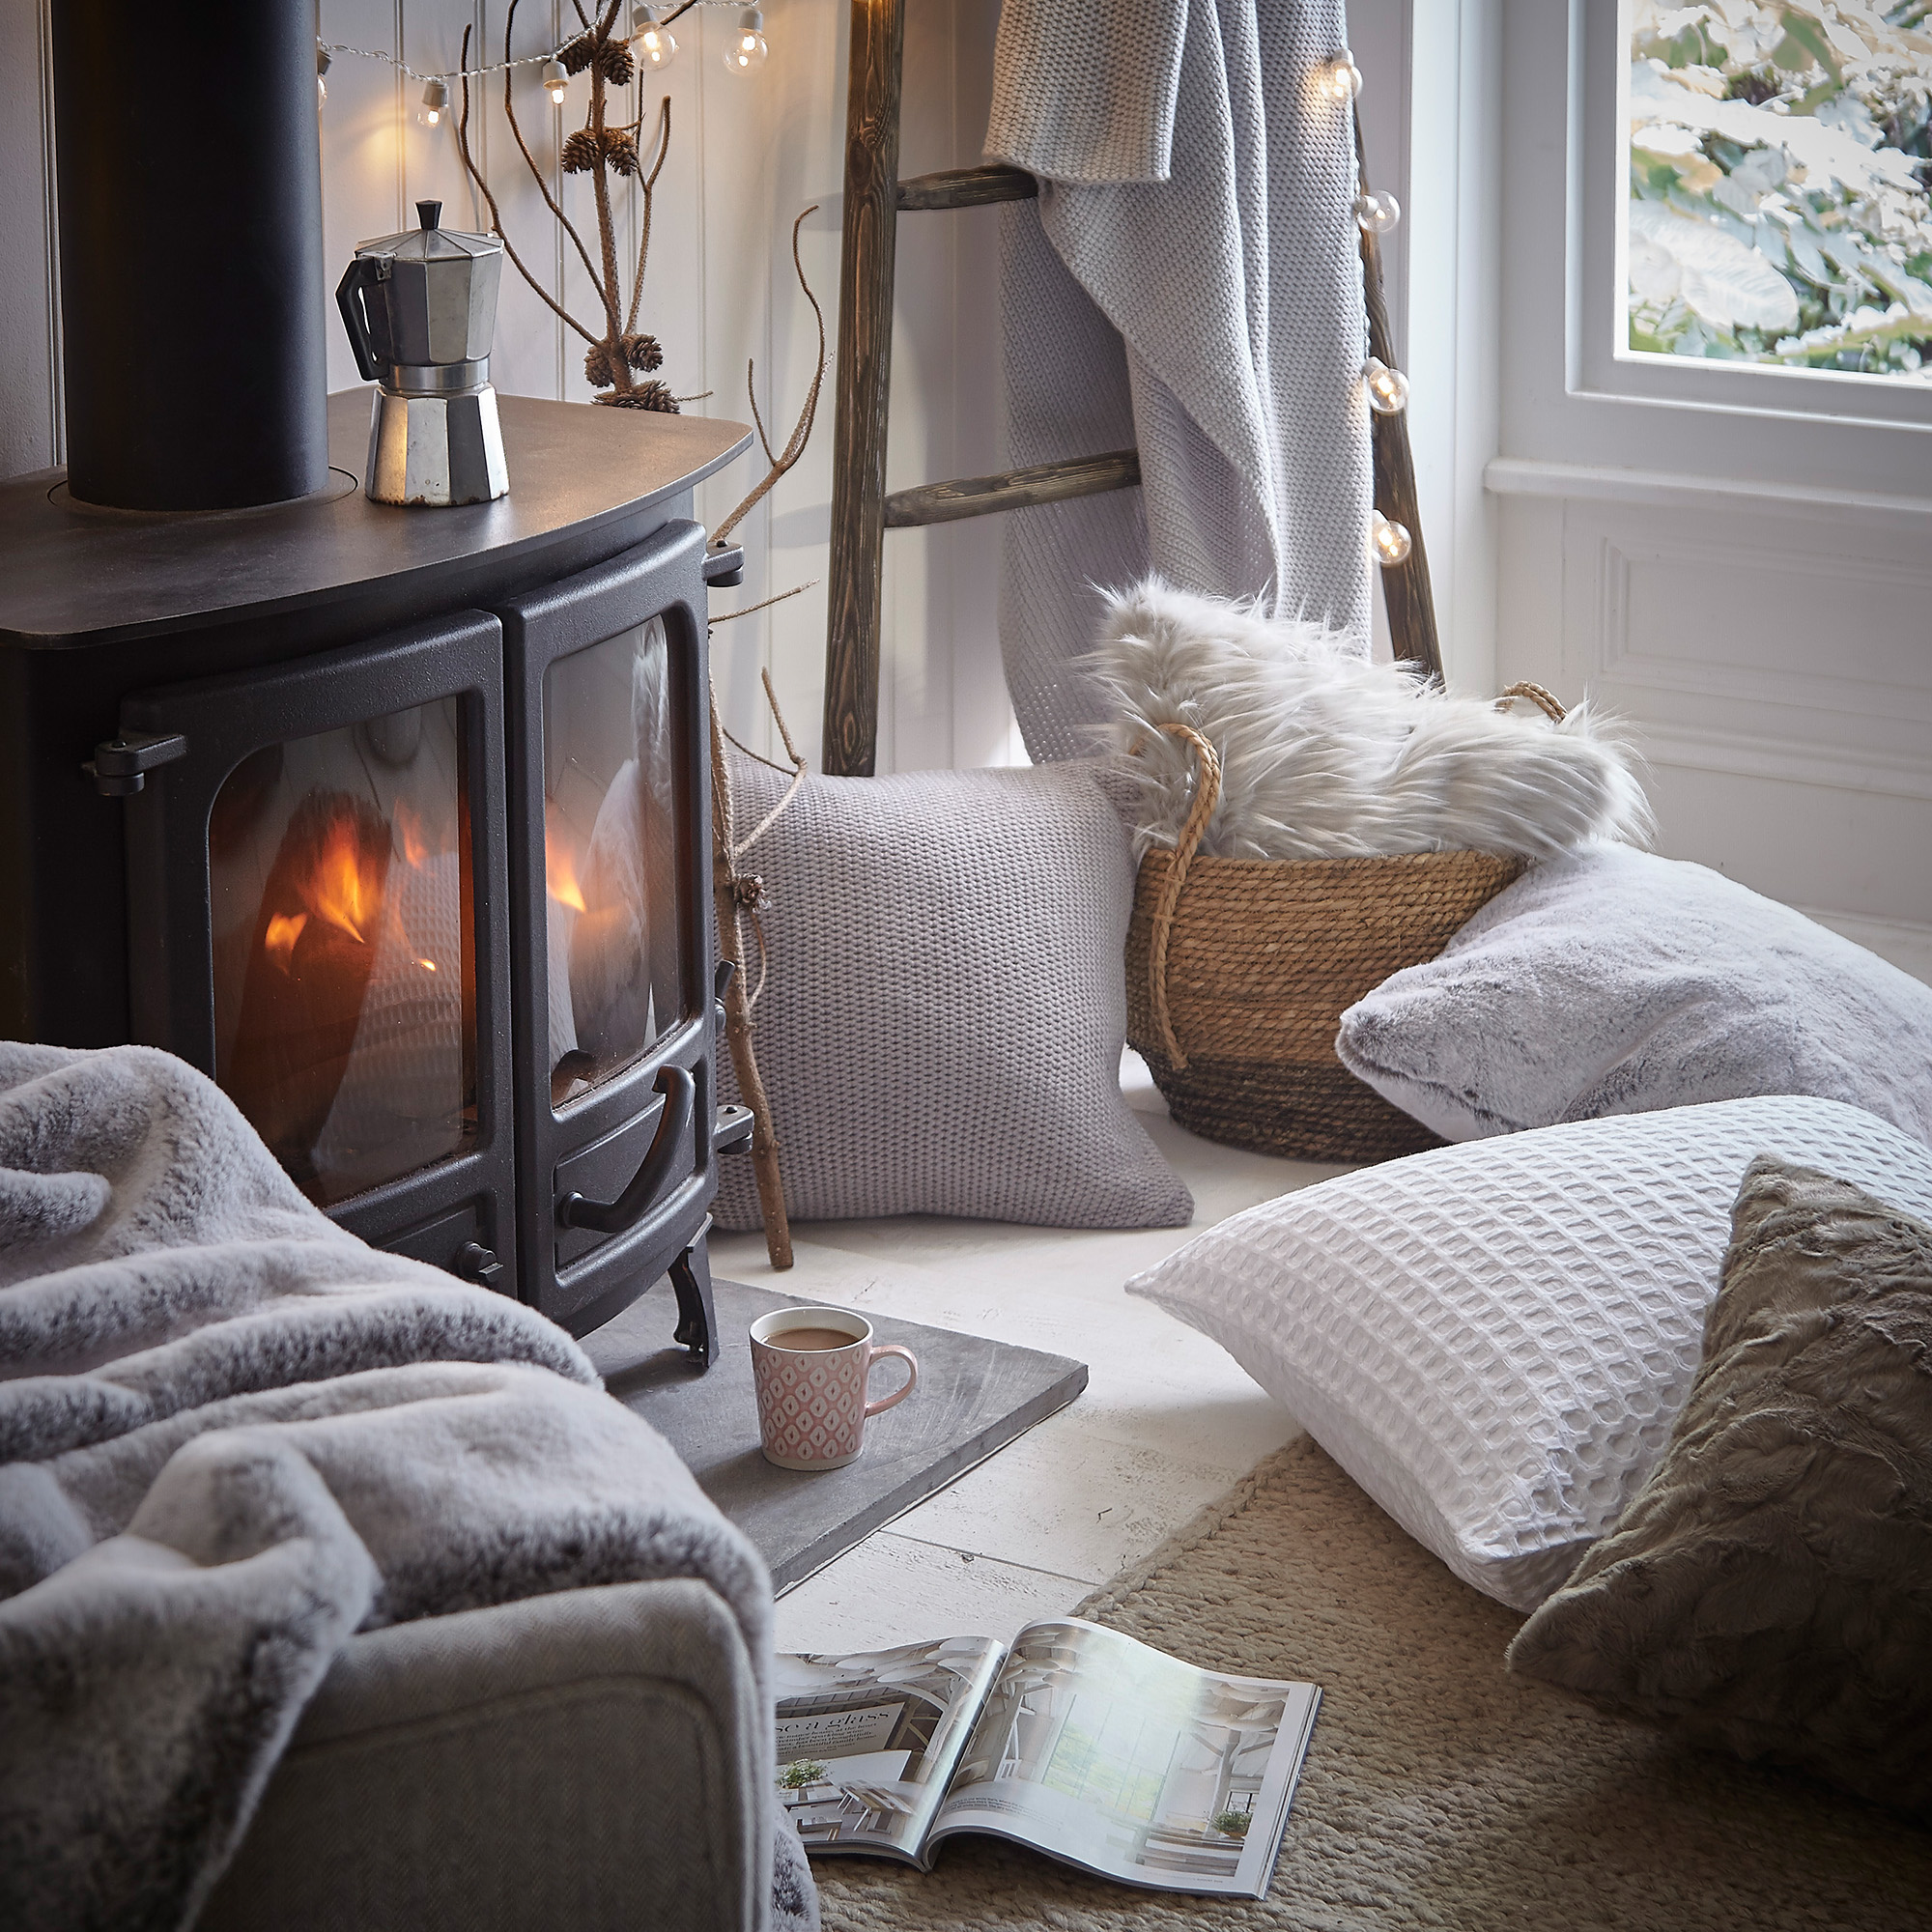 Stylish Ways To Keep Your Home Warm This Winter